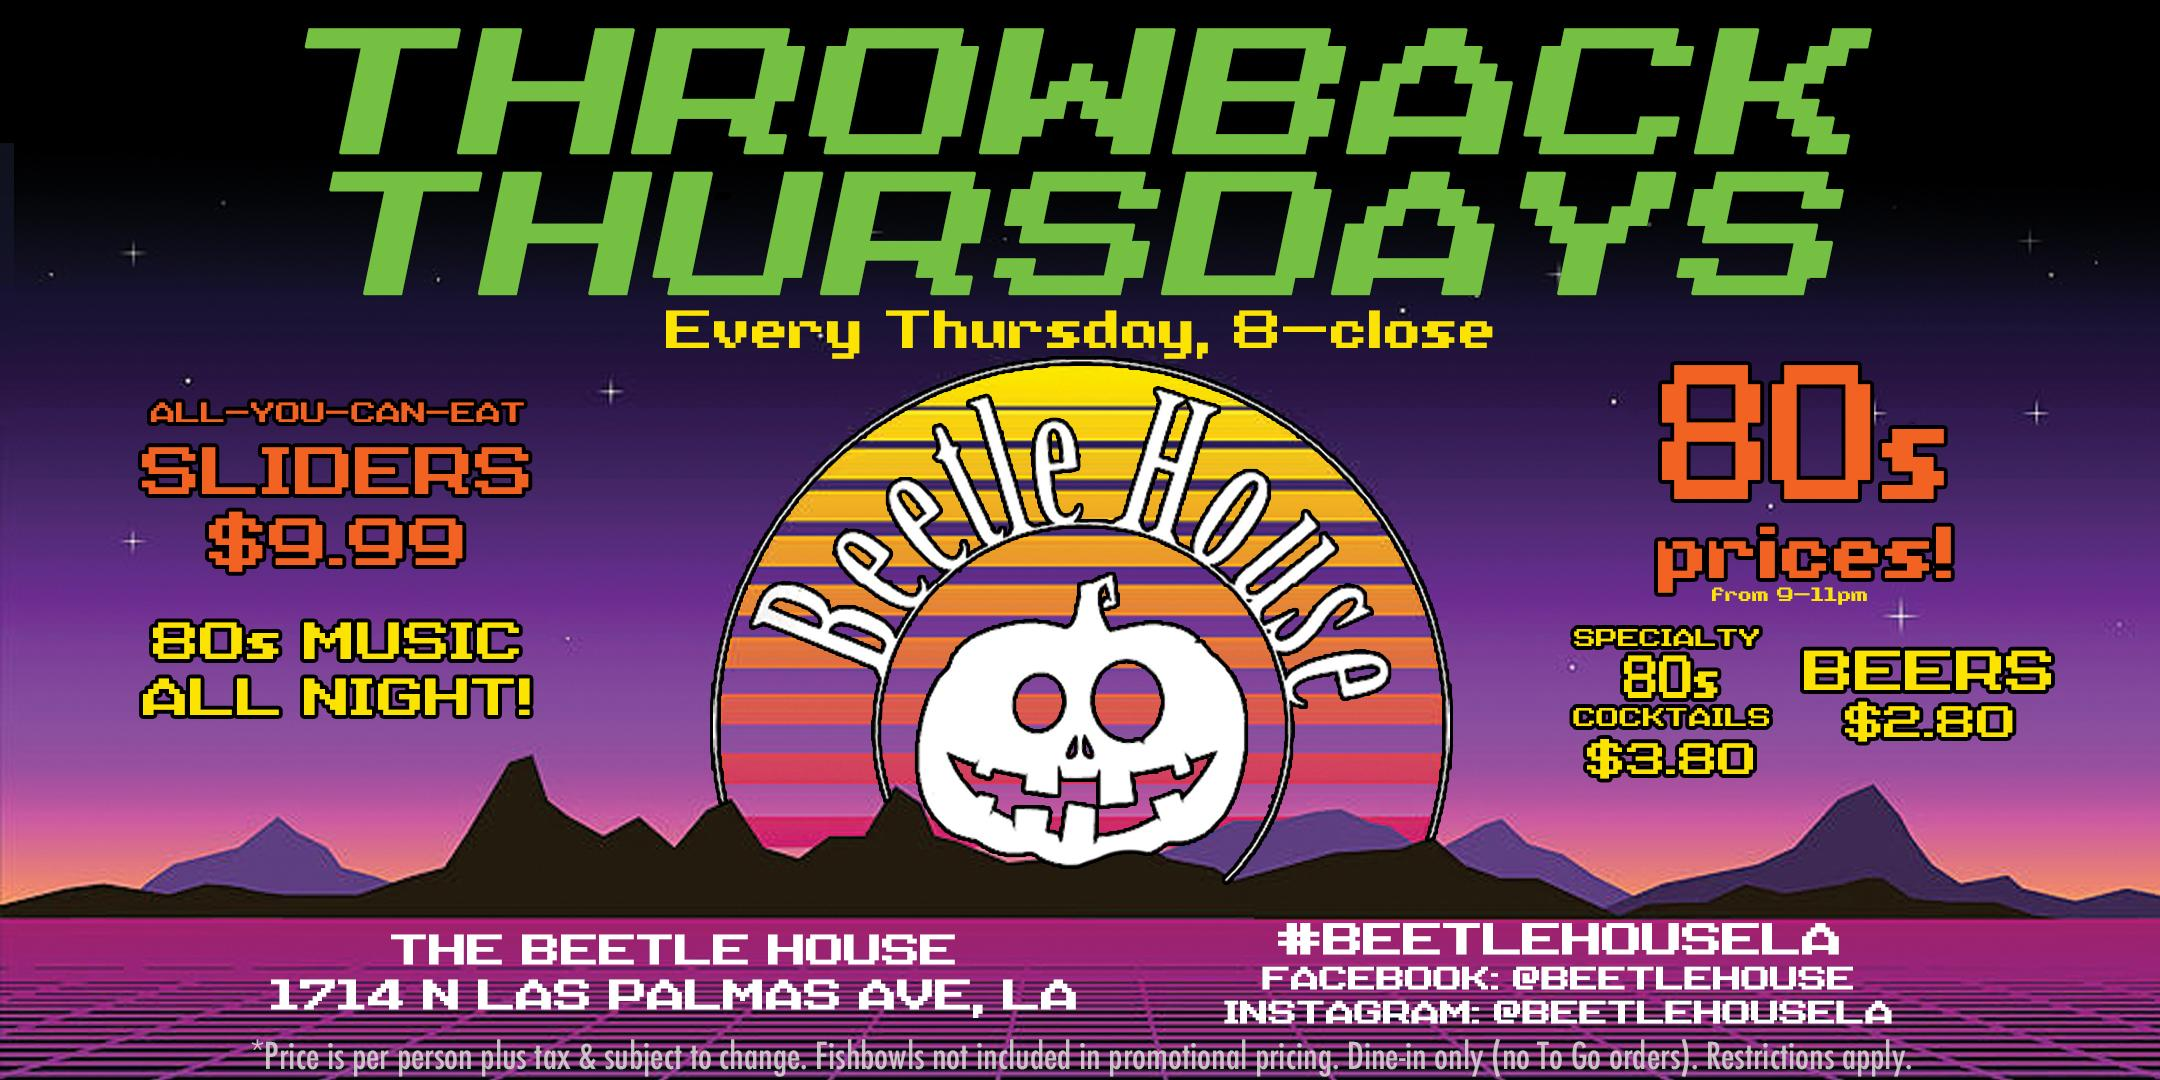 CURRENTLY POSTPONED Throwback Thursdays (Thursday's at the Beetle House)